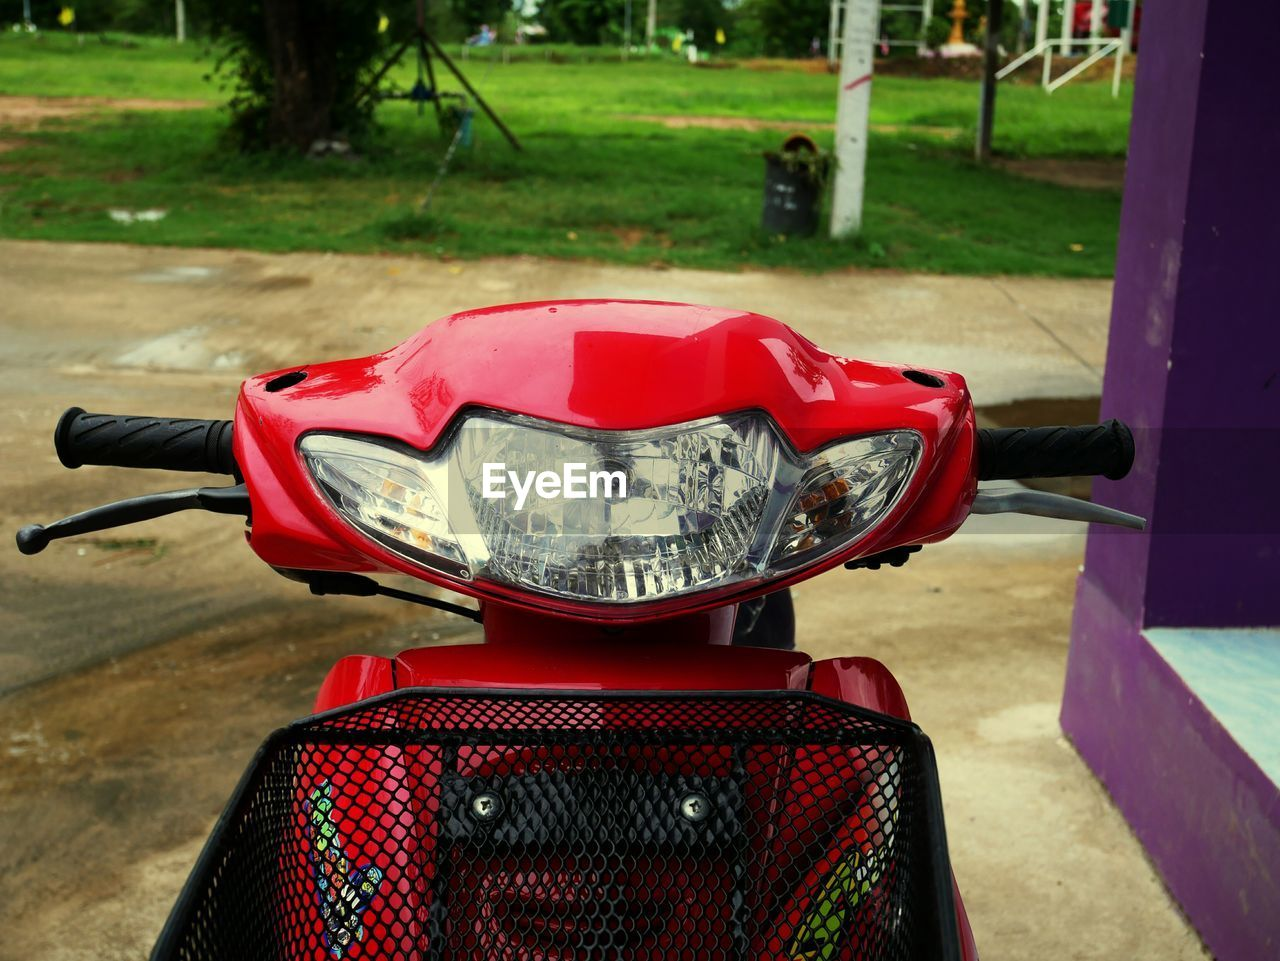 red, day, transportation, land vehicle, mode of transportation, focus on foreground, close-up, no people, rear view, playground, bicycle, motor scooter, outdoors, nature, scooter, motorcycle, metal, helmet, handlebar, city